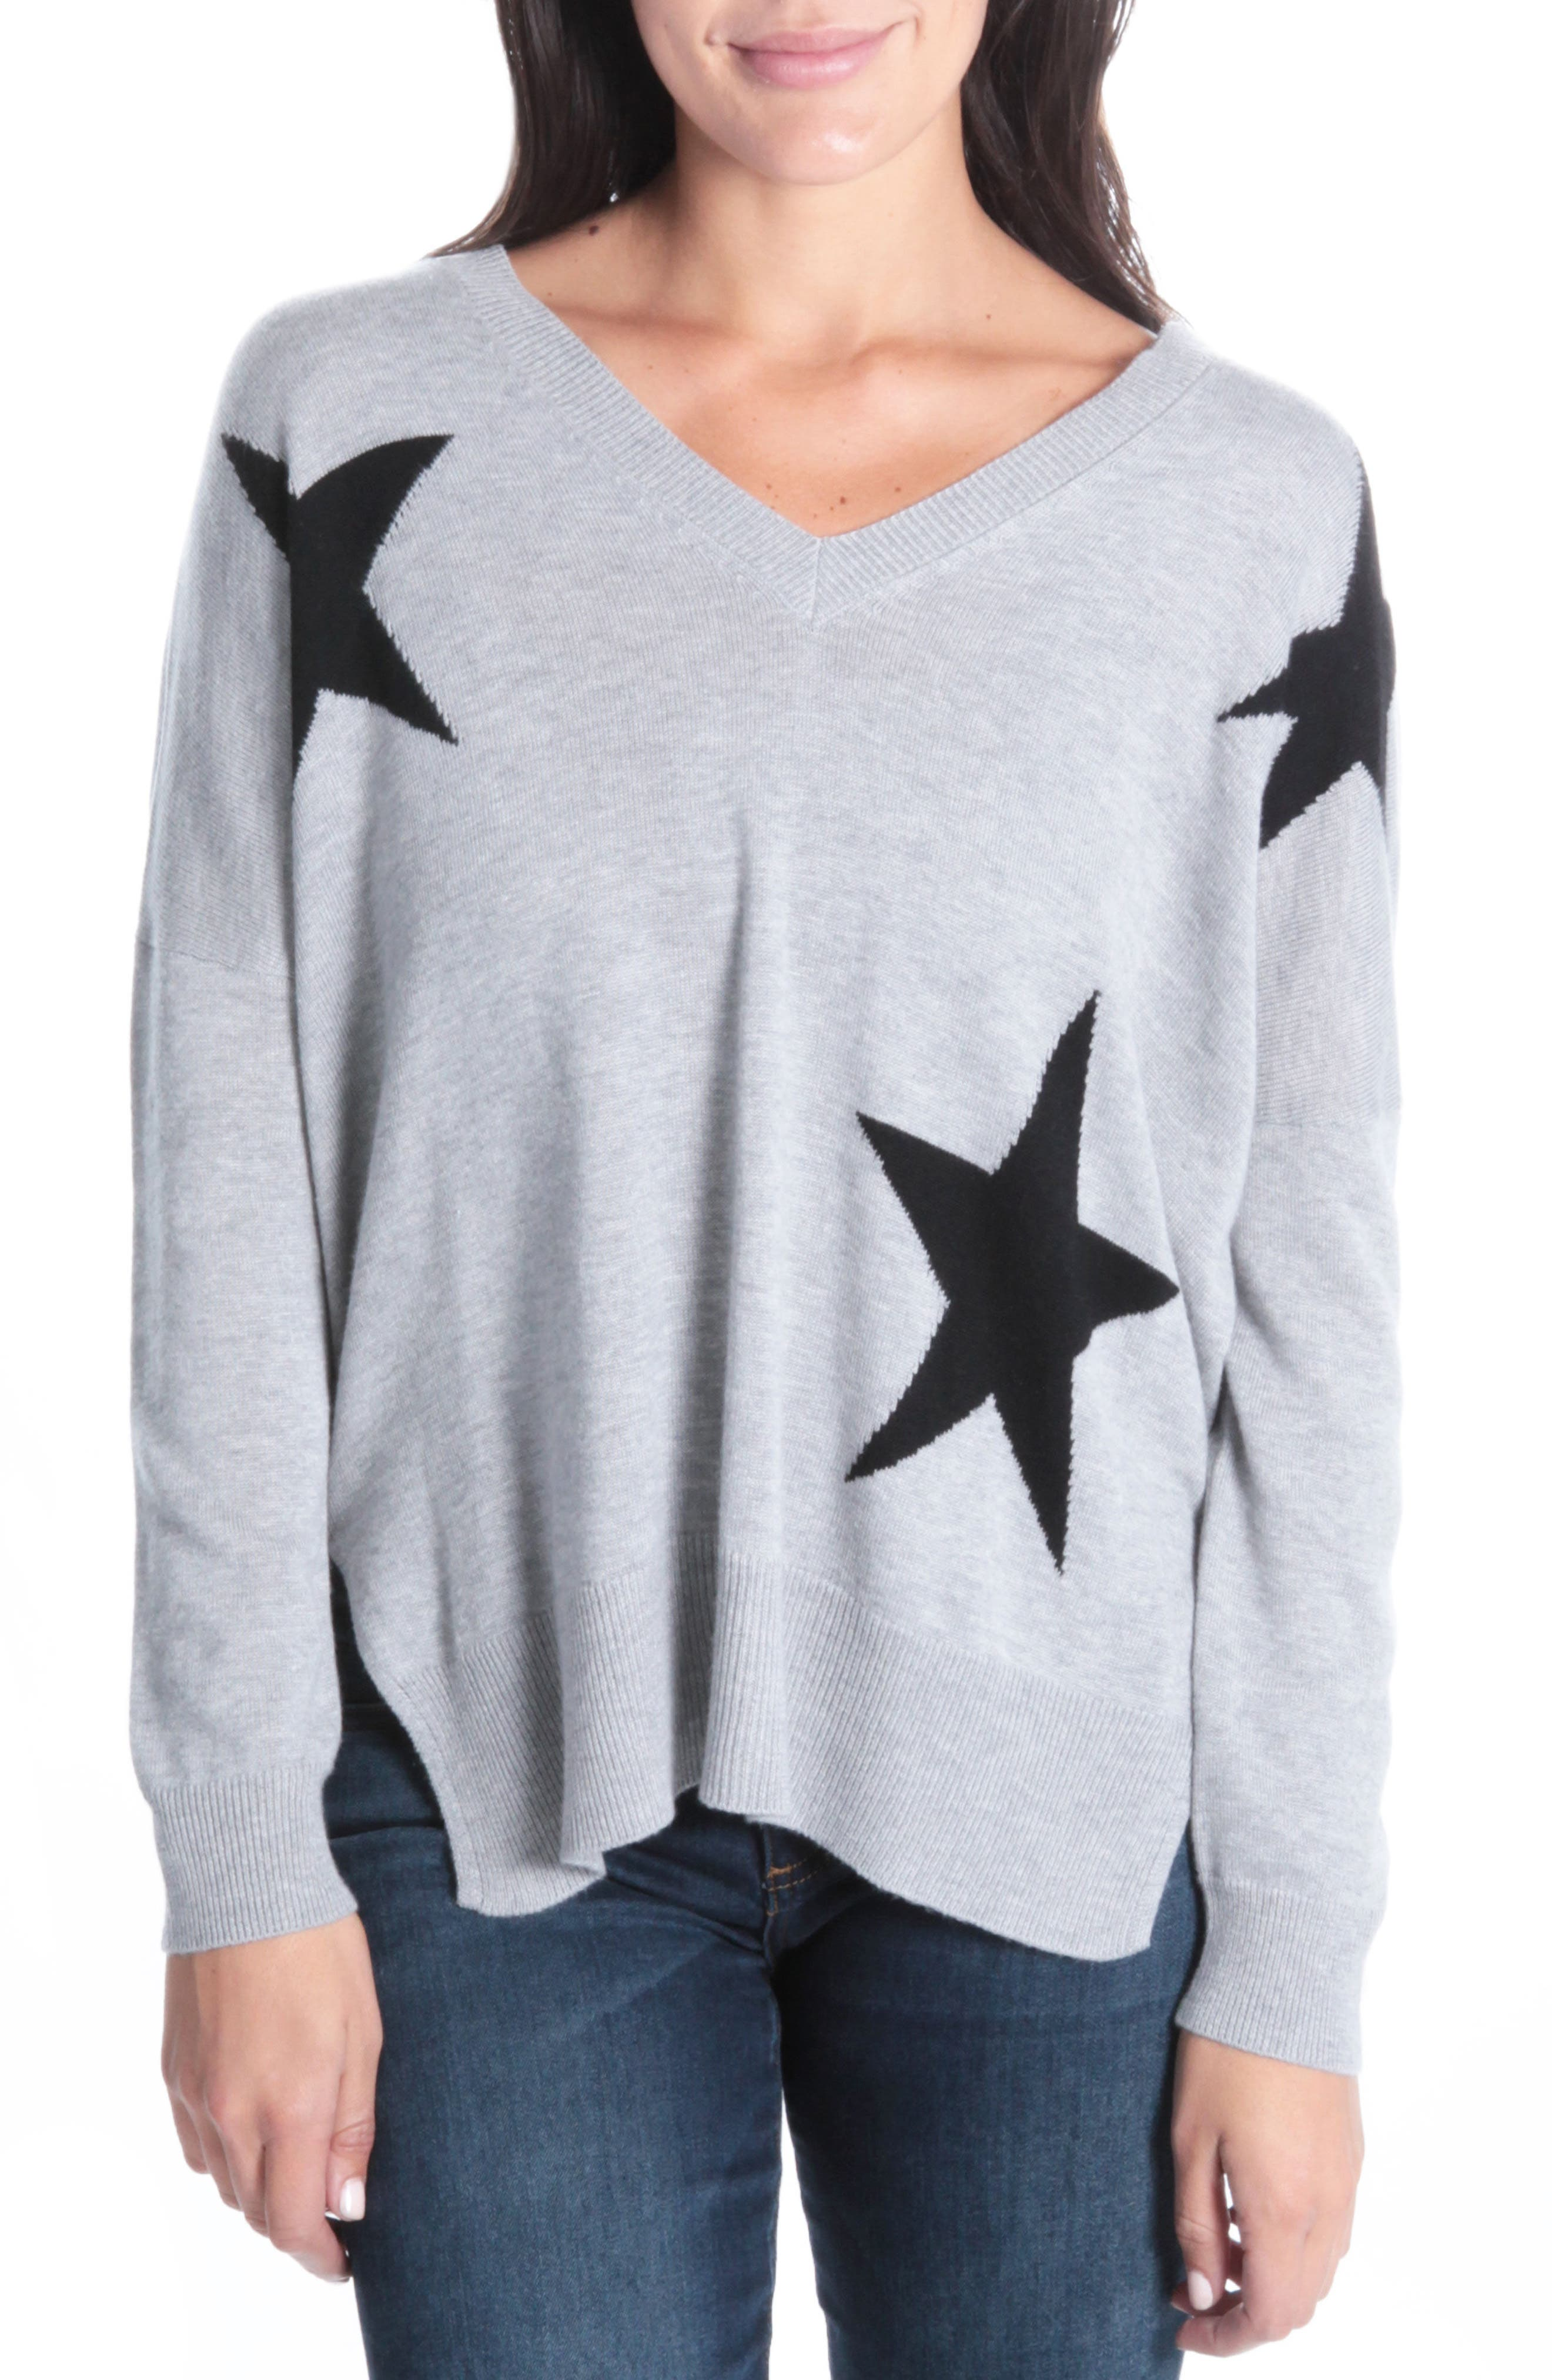 Kut from the Kloth Polly Star Sweater